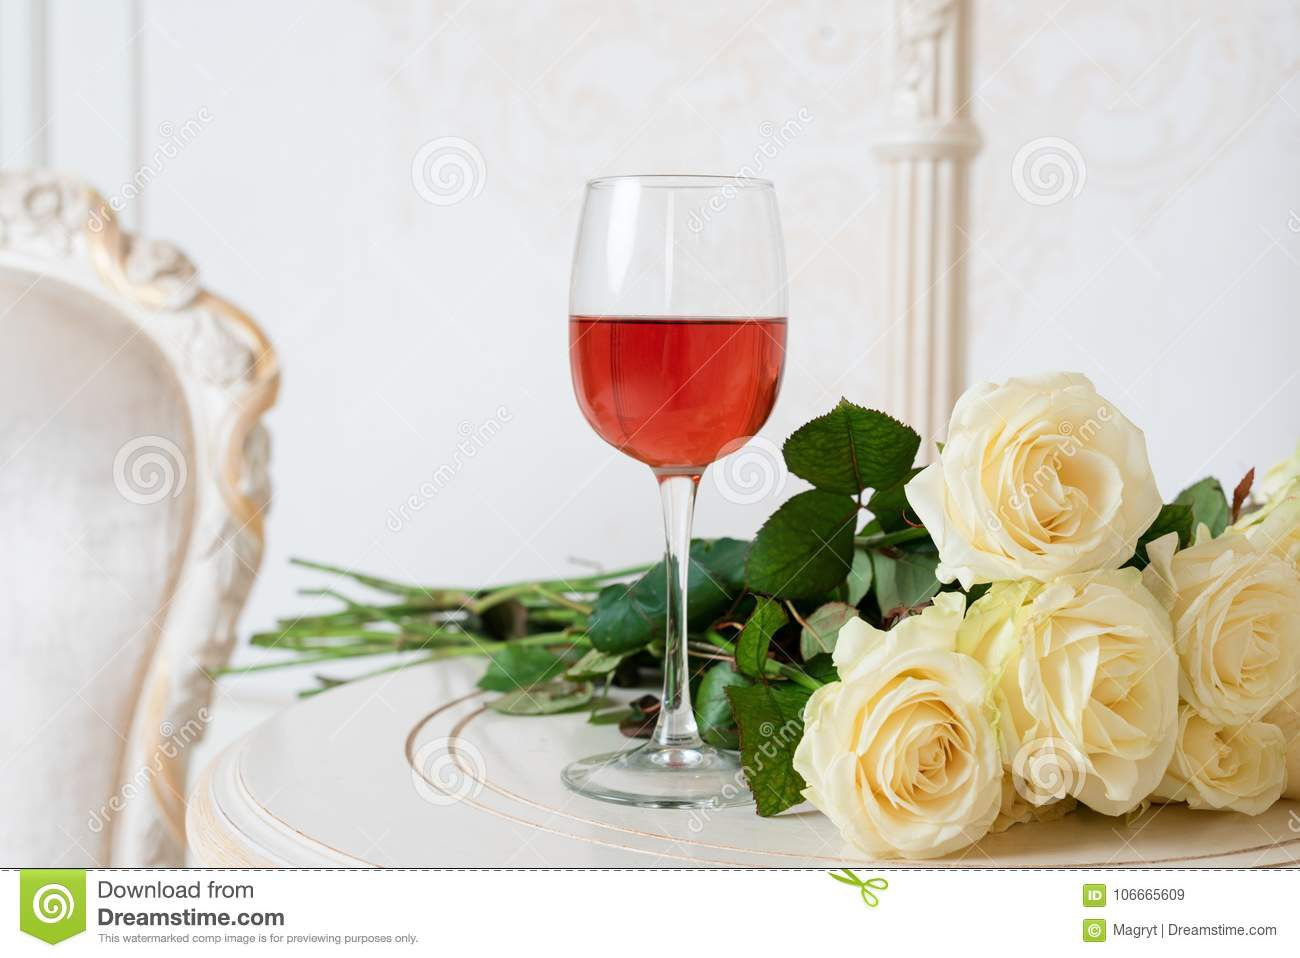 Romantic Holiday Composition With Wine Glass And Roses For